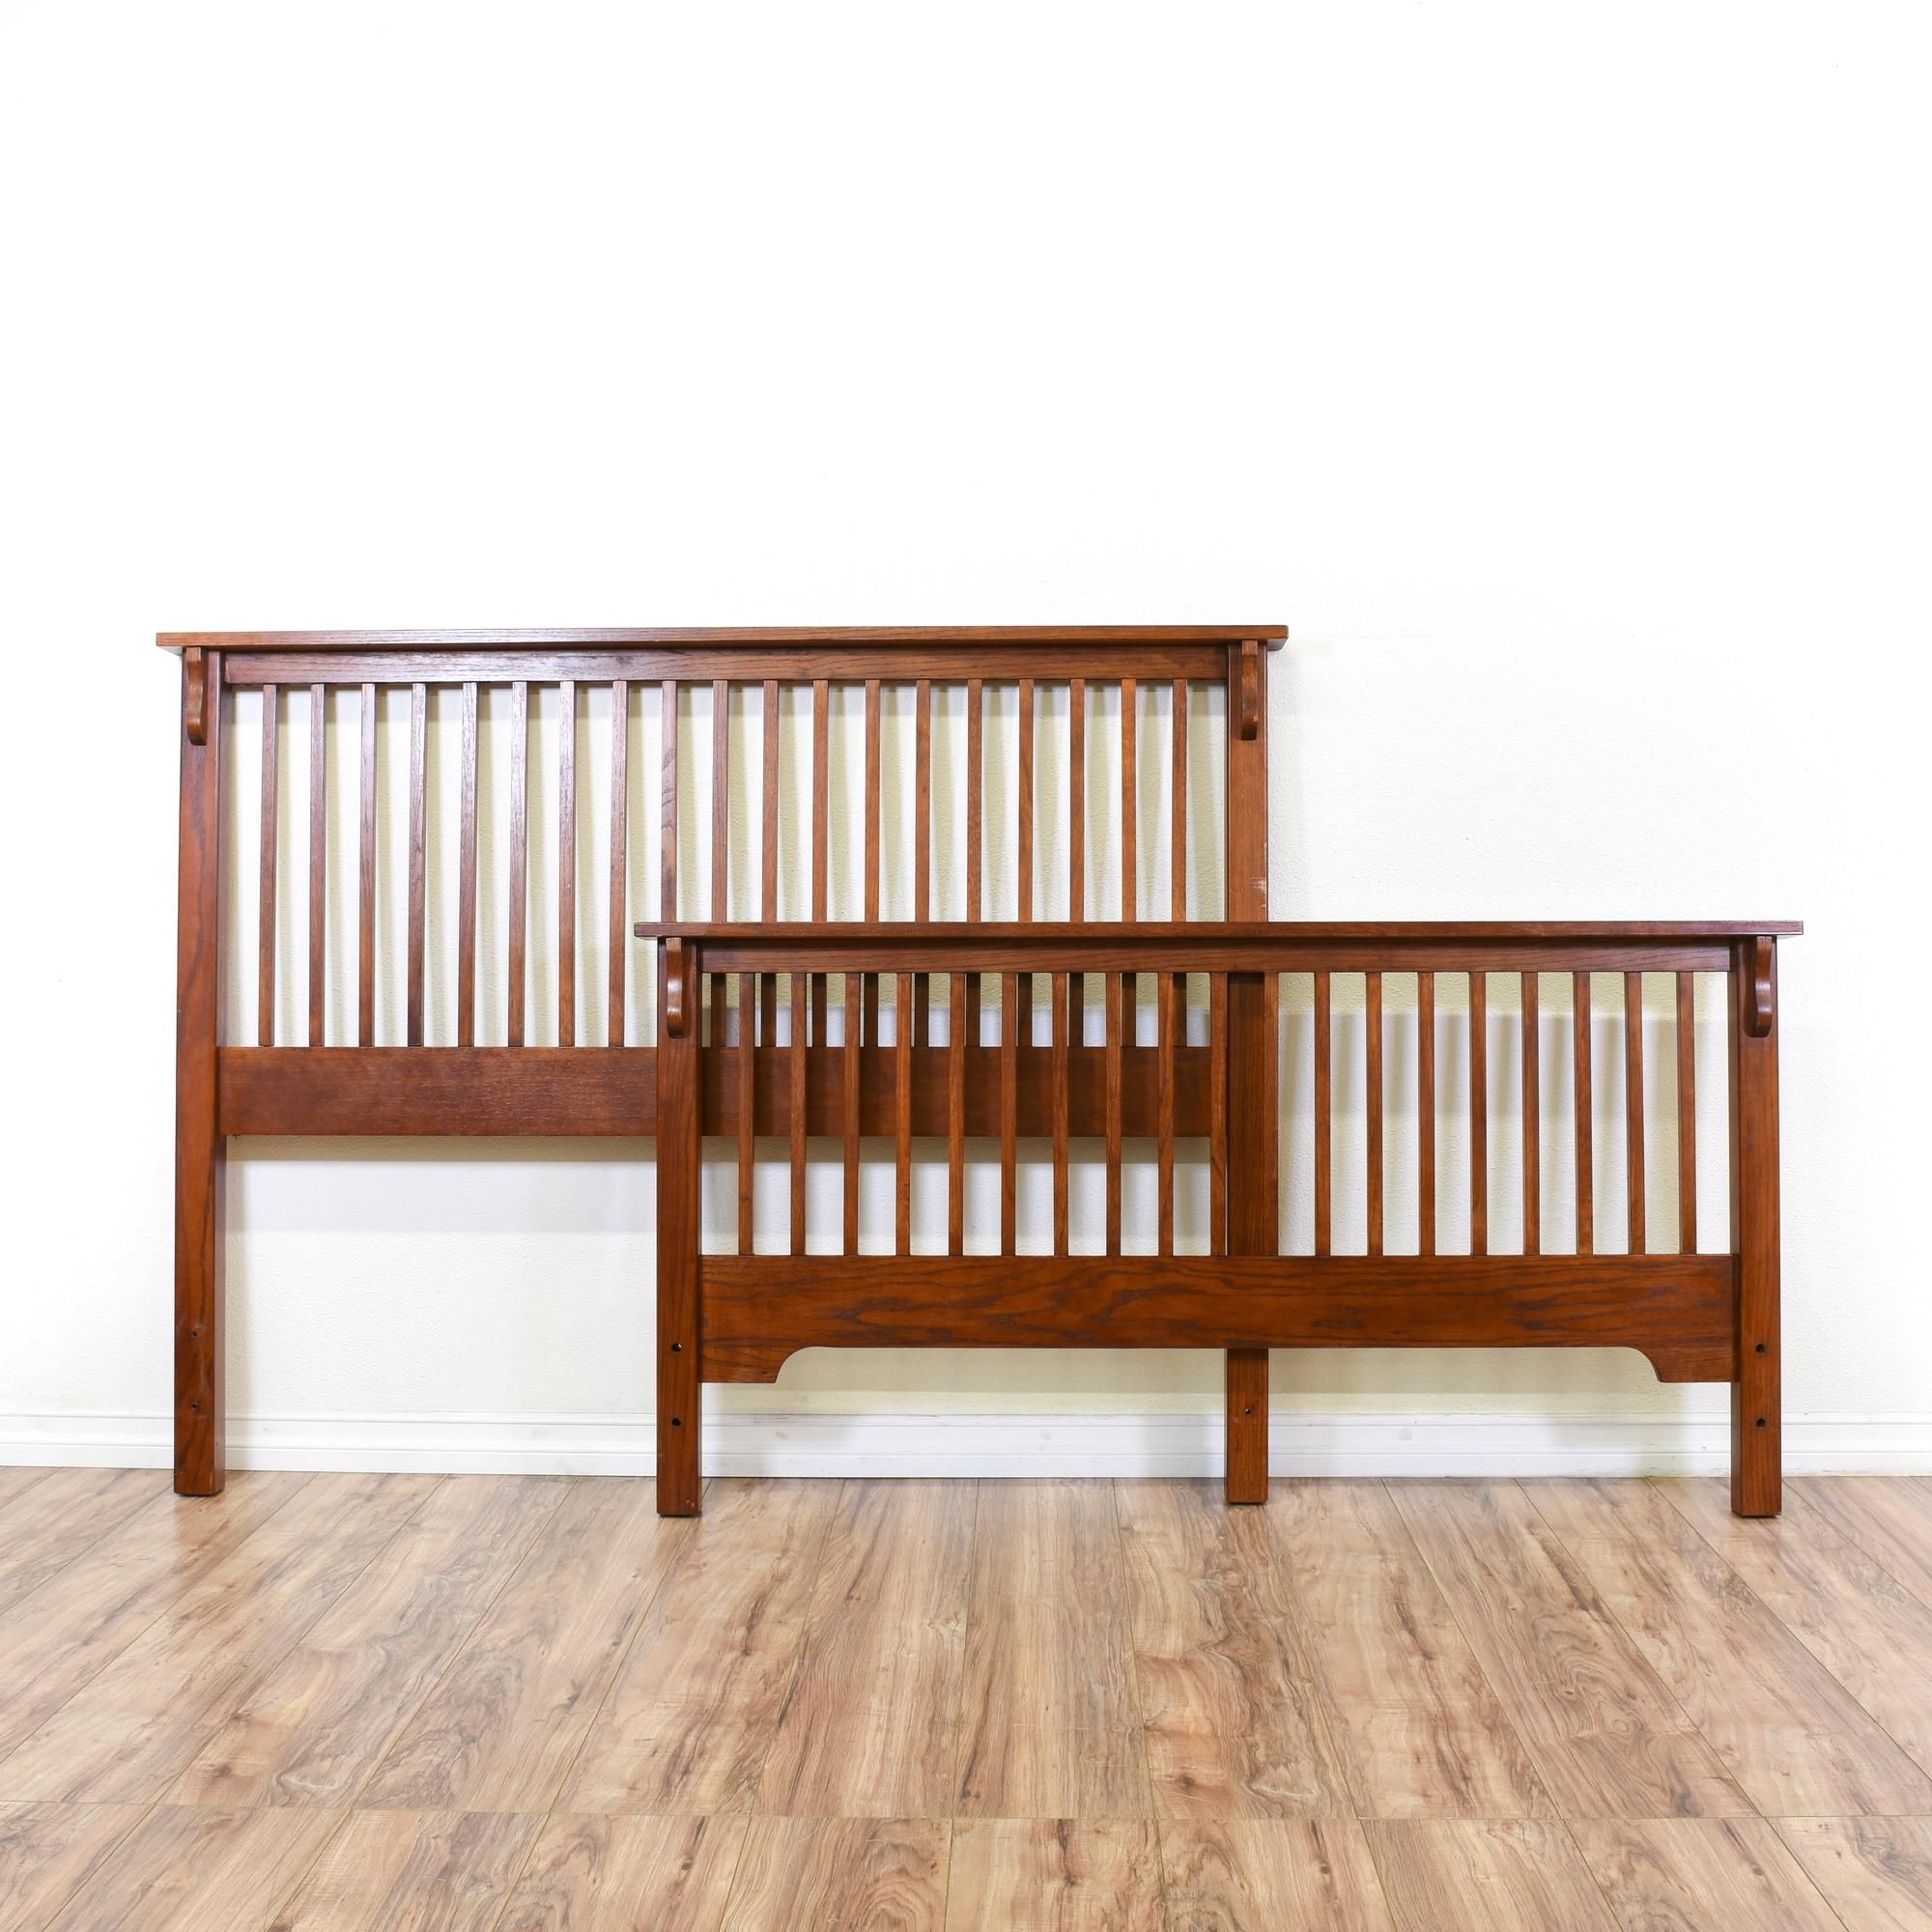 This Mission Style Bedframe Is Featured In A Solid Wood With Golden Oak Finish Vintage Headboard And Footboard Set Has Clic Slat Design